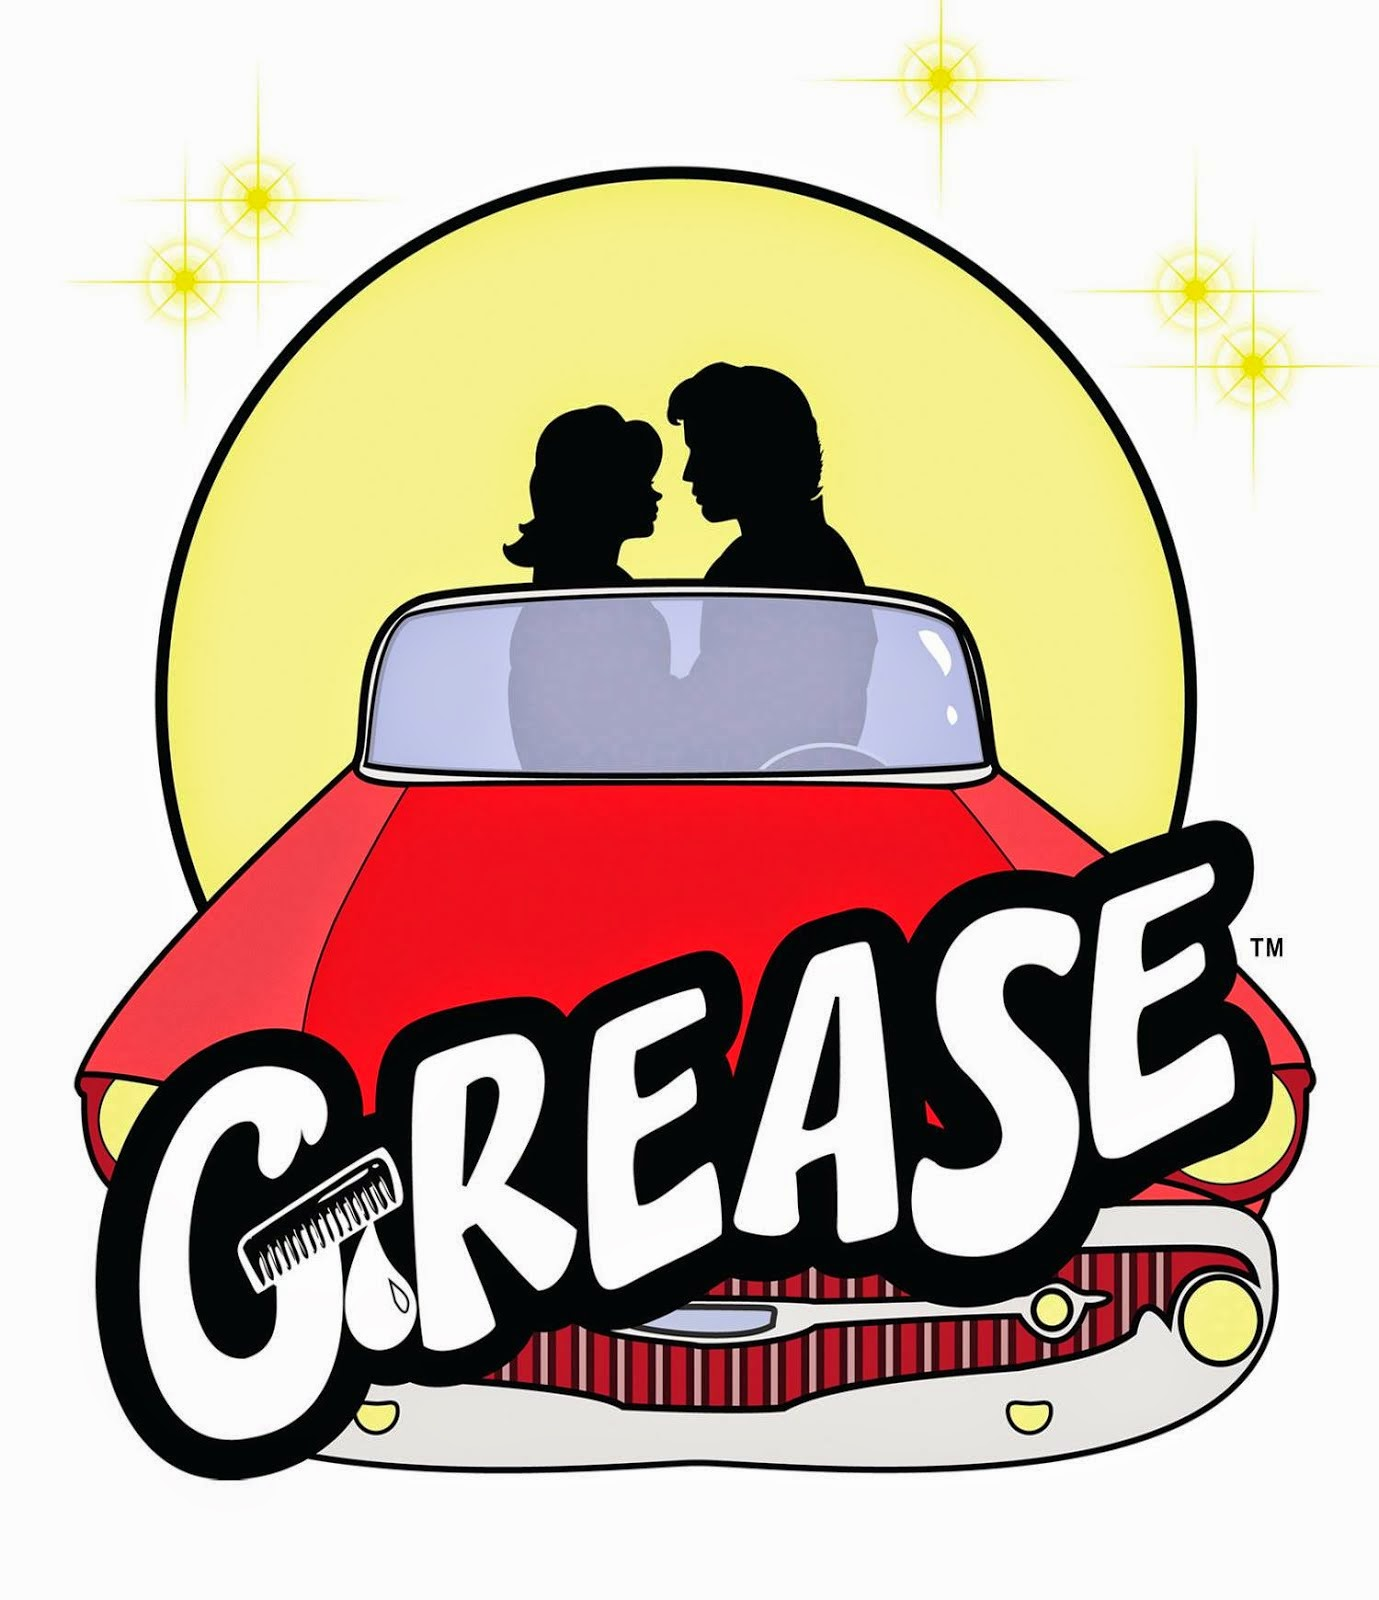 Upcoming Project: GREASE